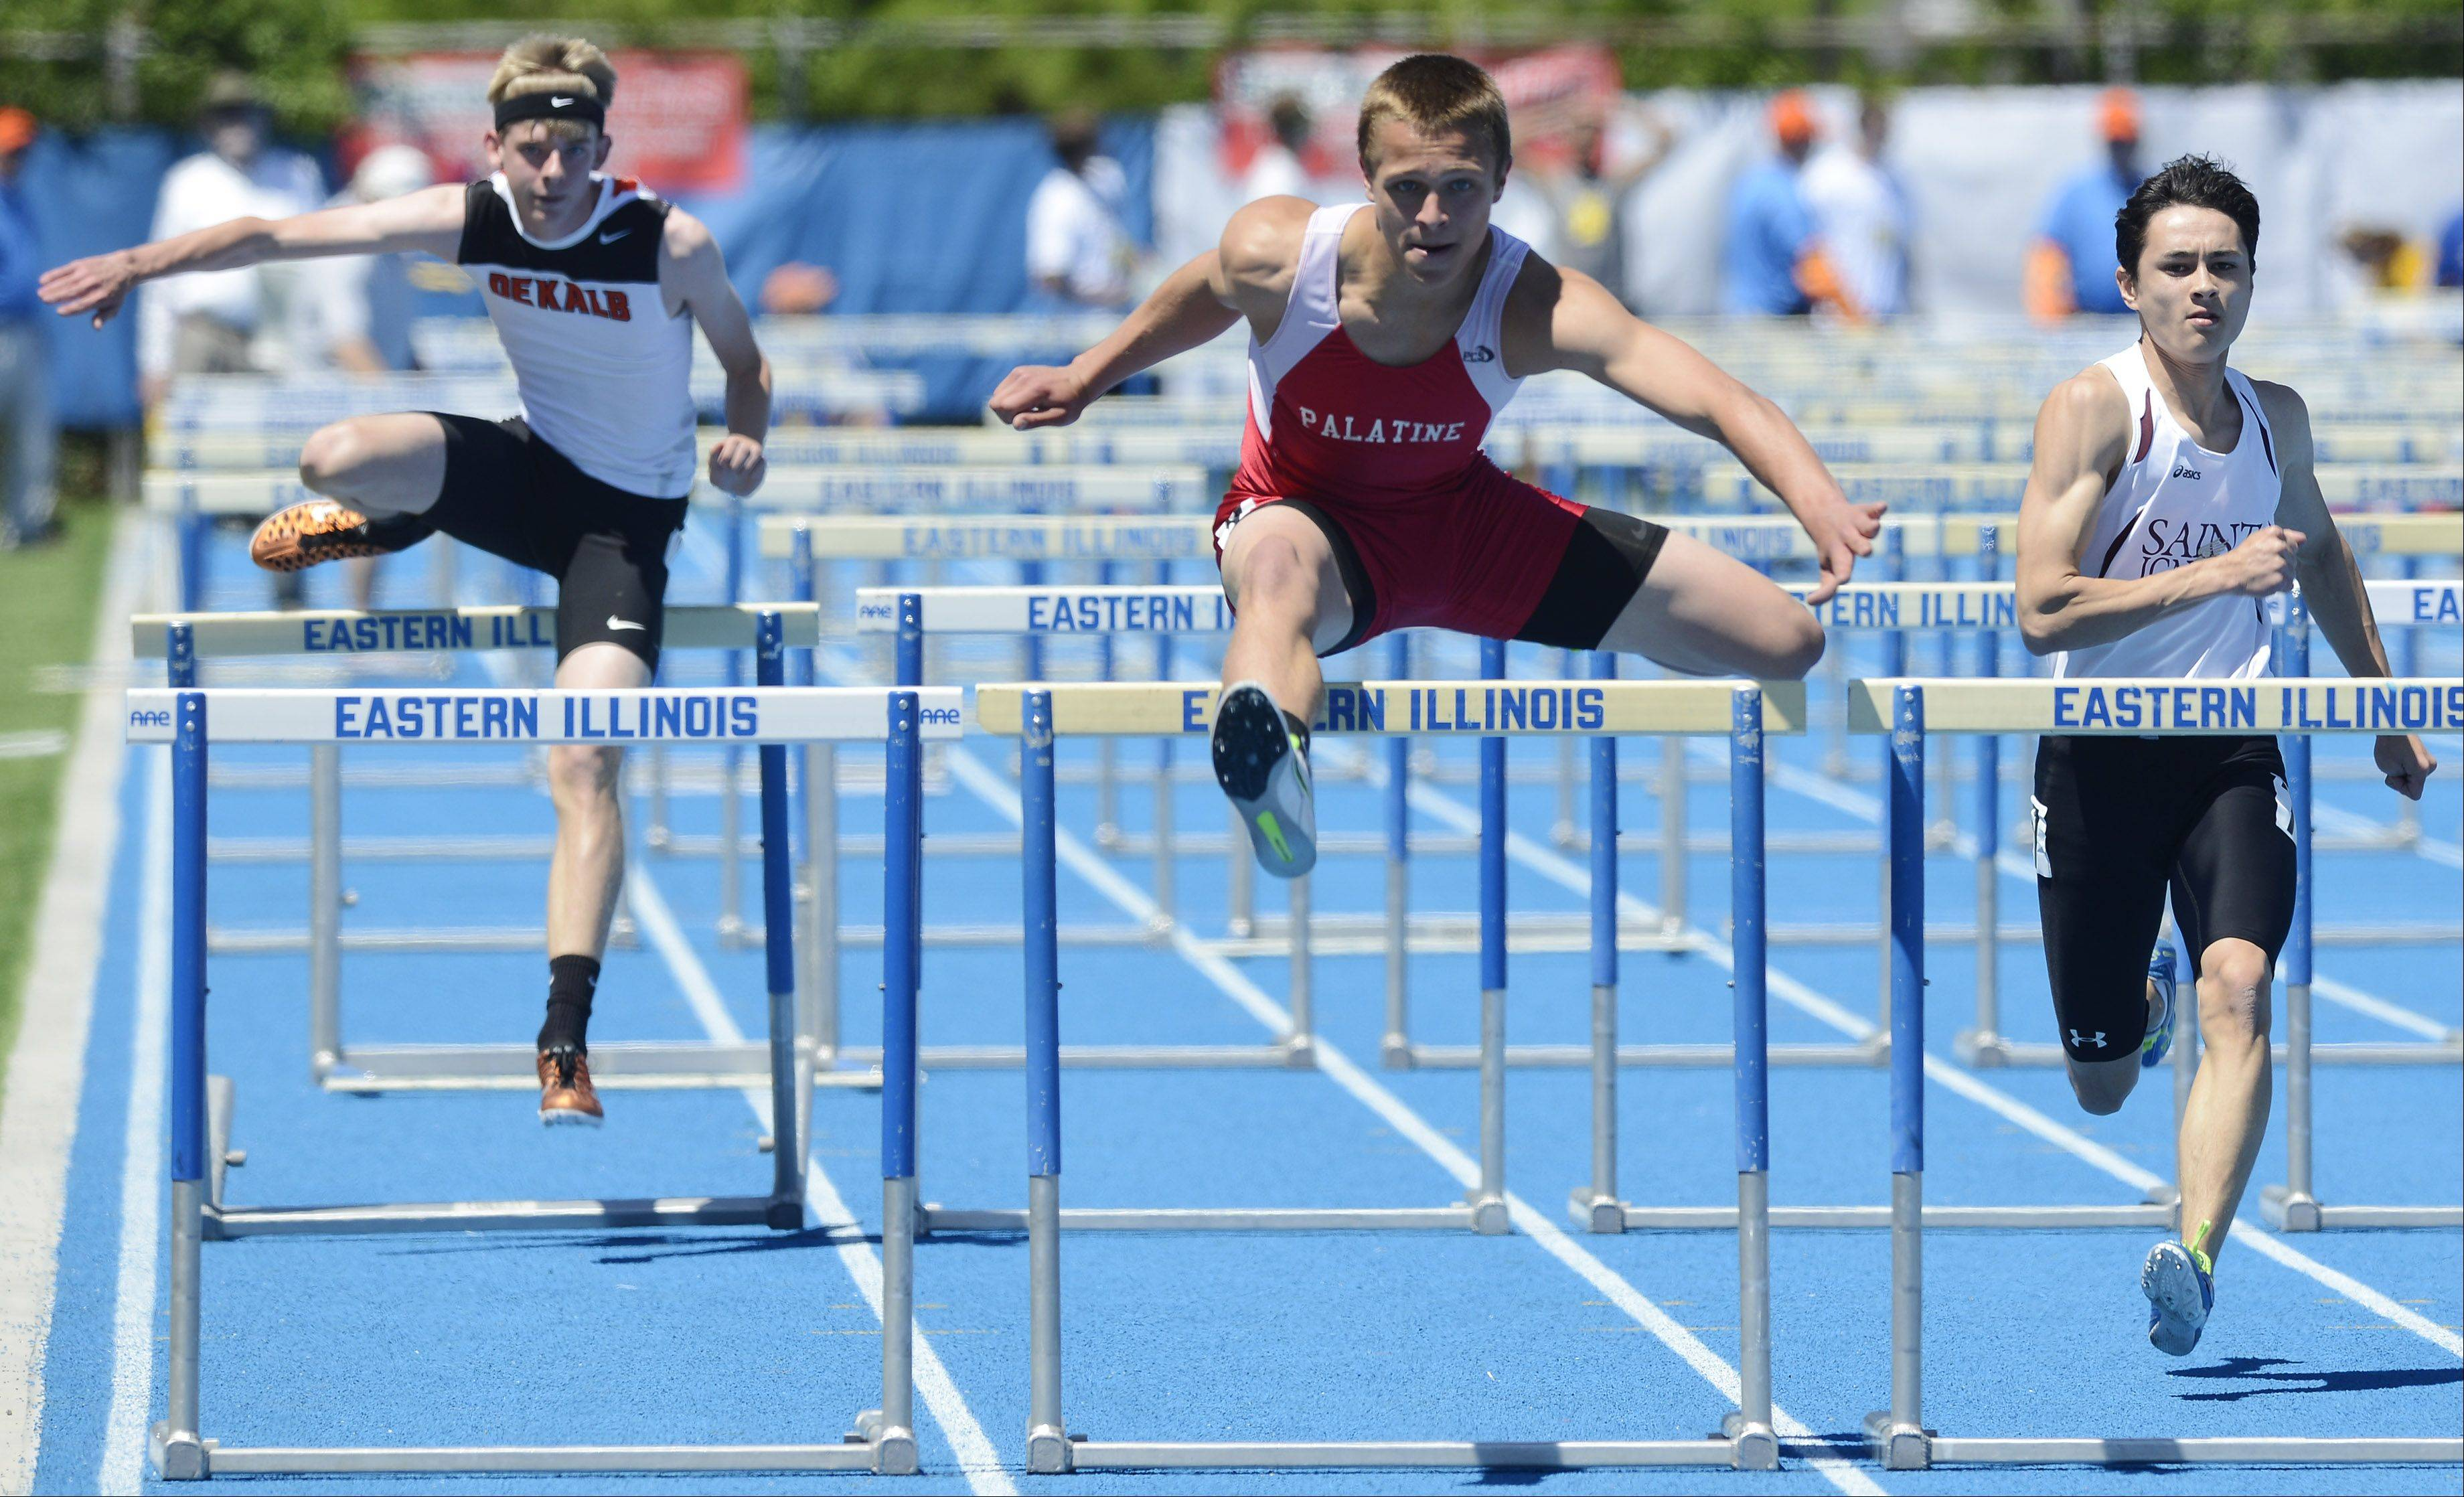 Palatine's Cam Kuksa, middle, clears the final hurdle in the 110-meter high hurdles during the boys track state meet preliminaries in Charleston on Friday.